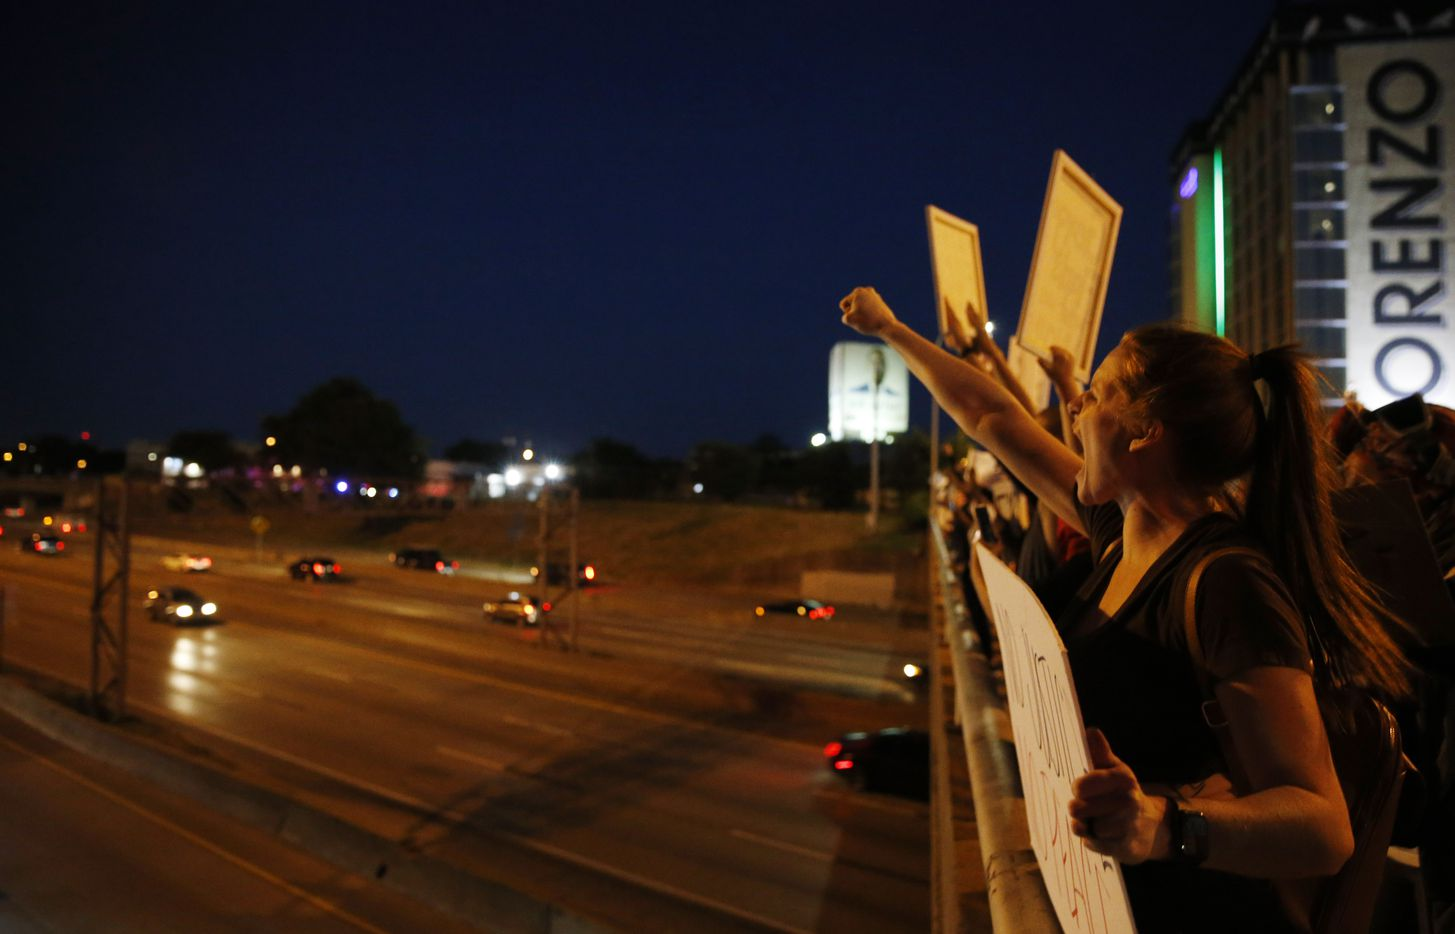 Protesters yell and cheer out on the Akard St. bridge to traffic along Interstate 30 during a demonstration against police brutality in downtown Dallas, on Friday, May 29, 2020. George Floyd died in police custody in Minneapolis on May 25.